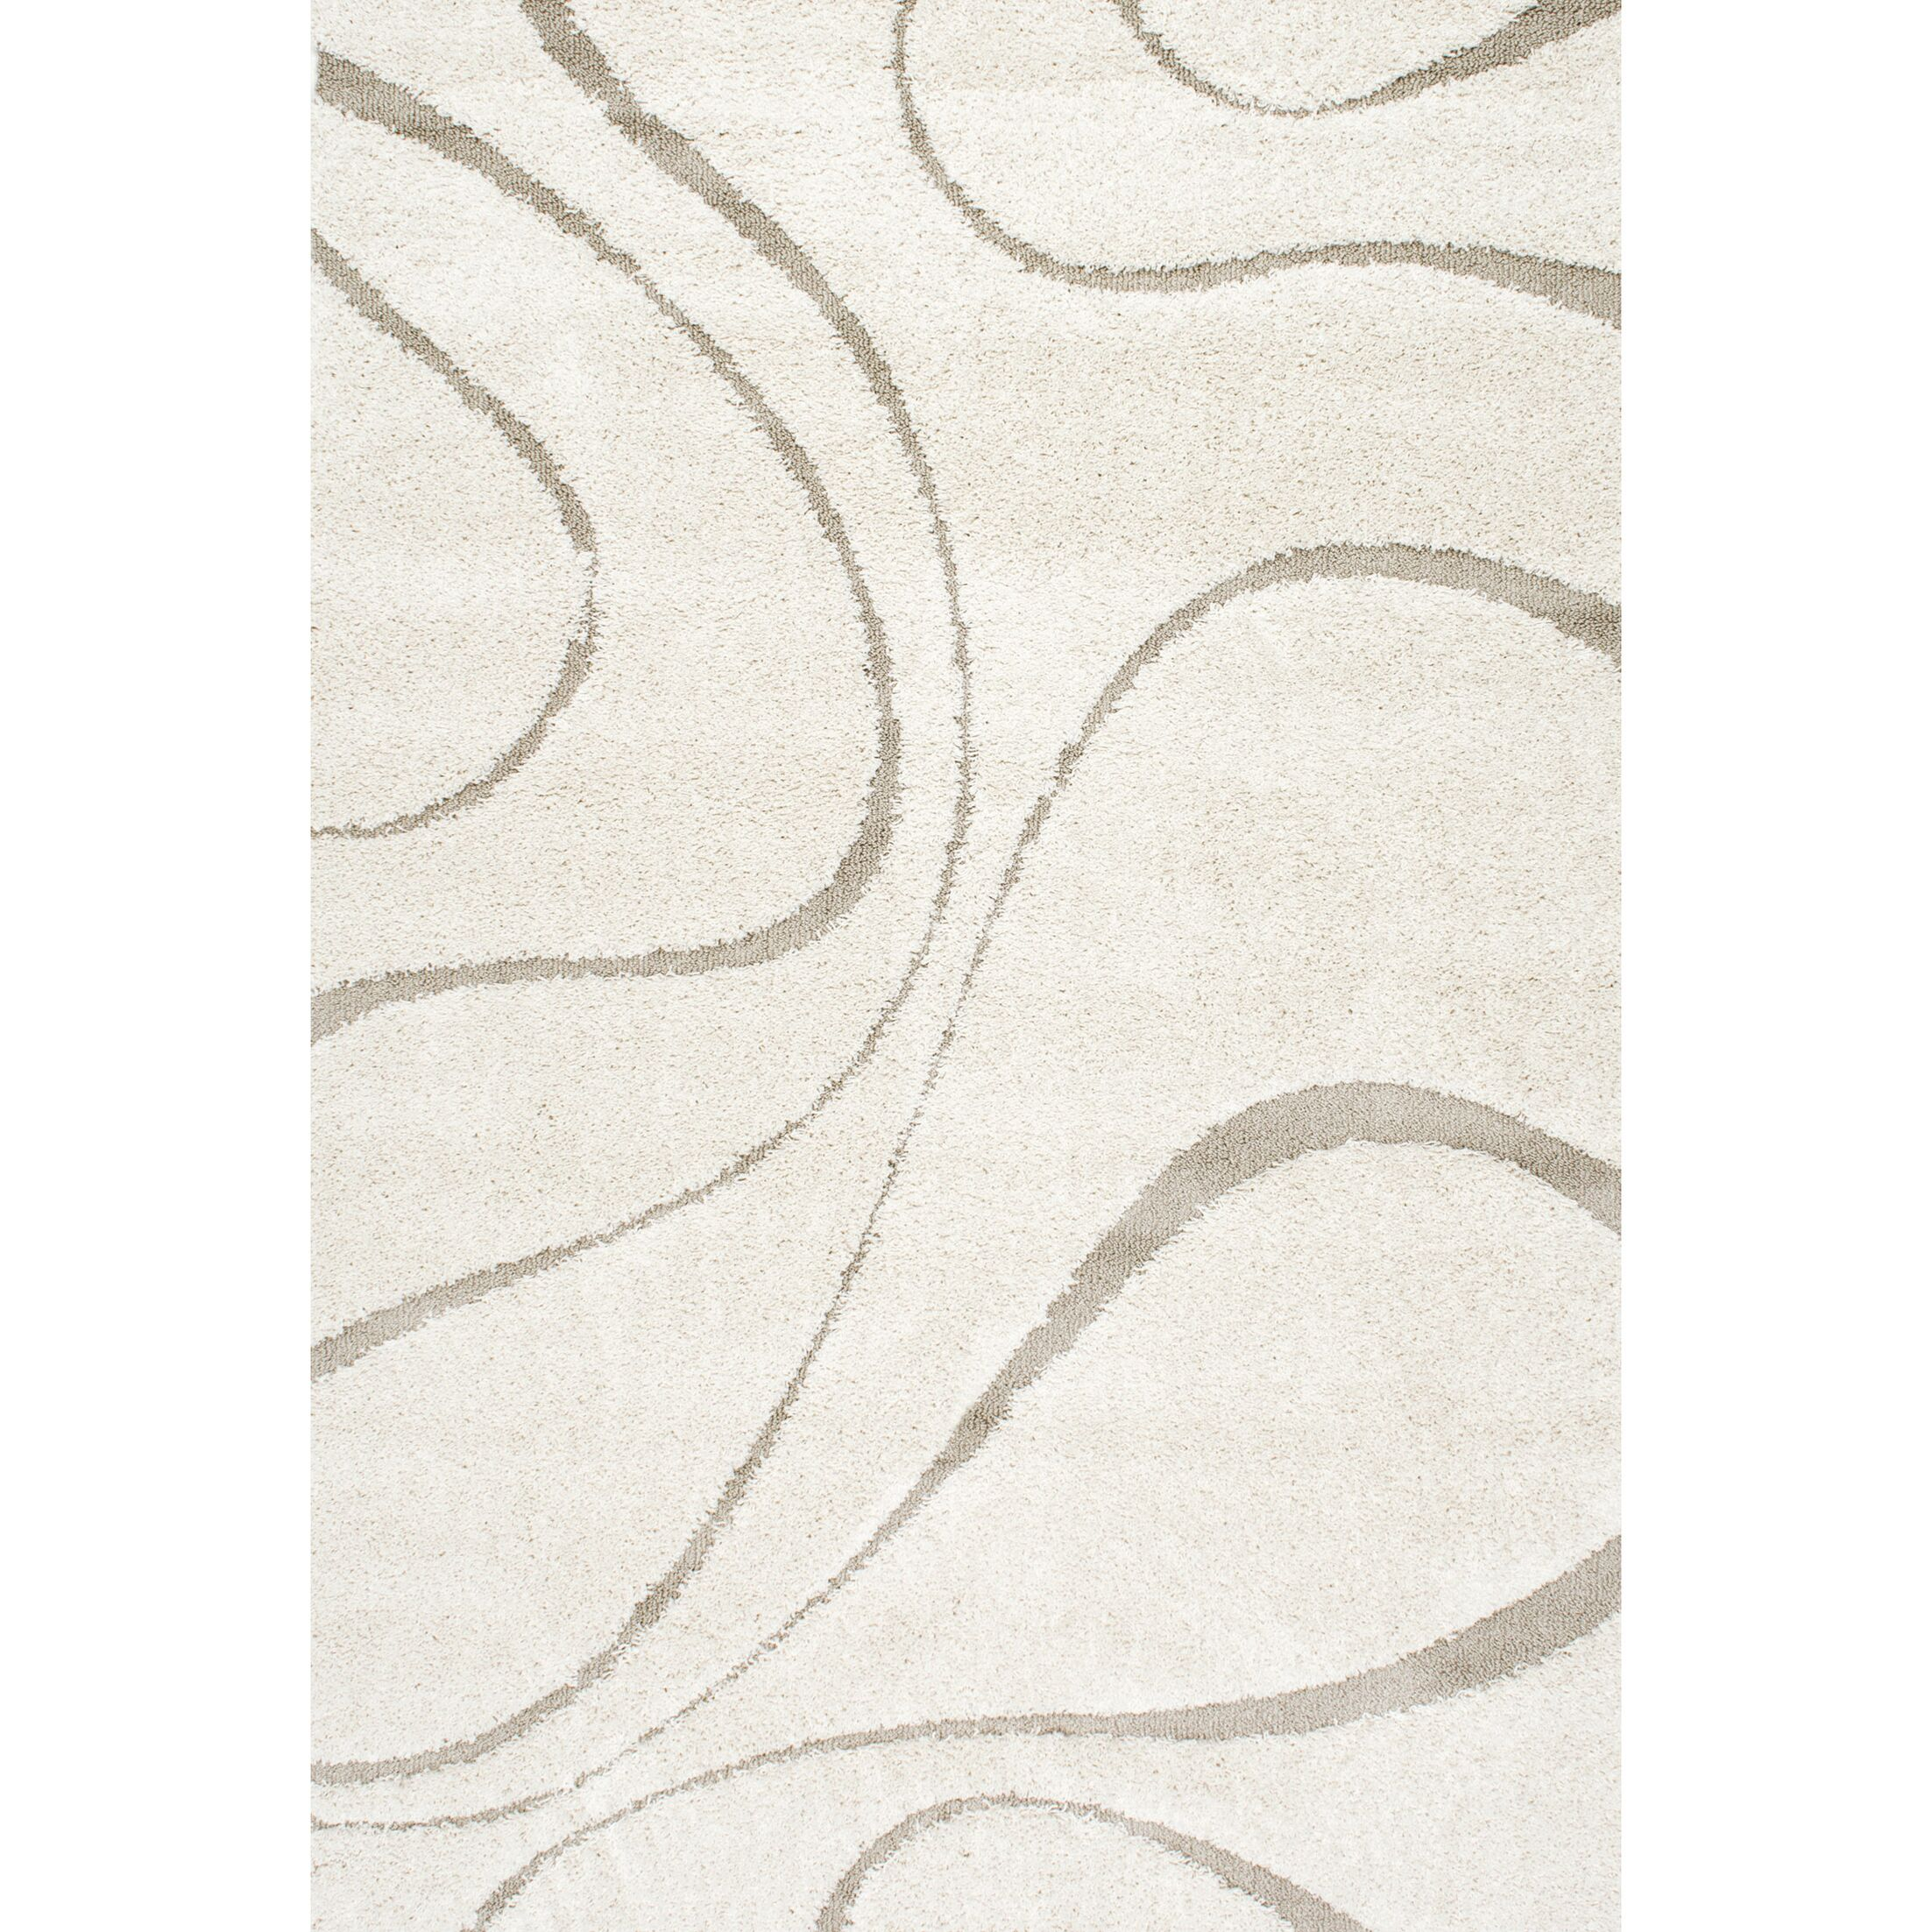 Helgeson White Area Rug Rug Size: Rectangle 7'10